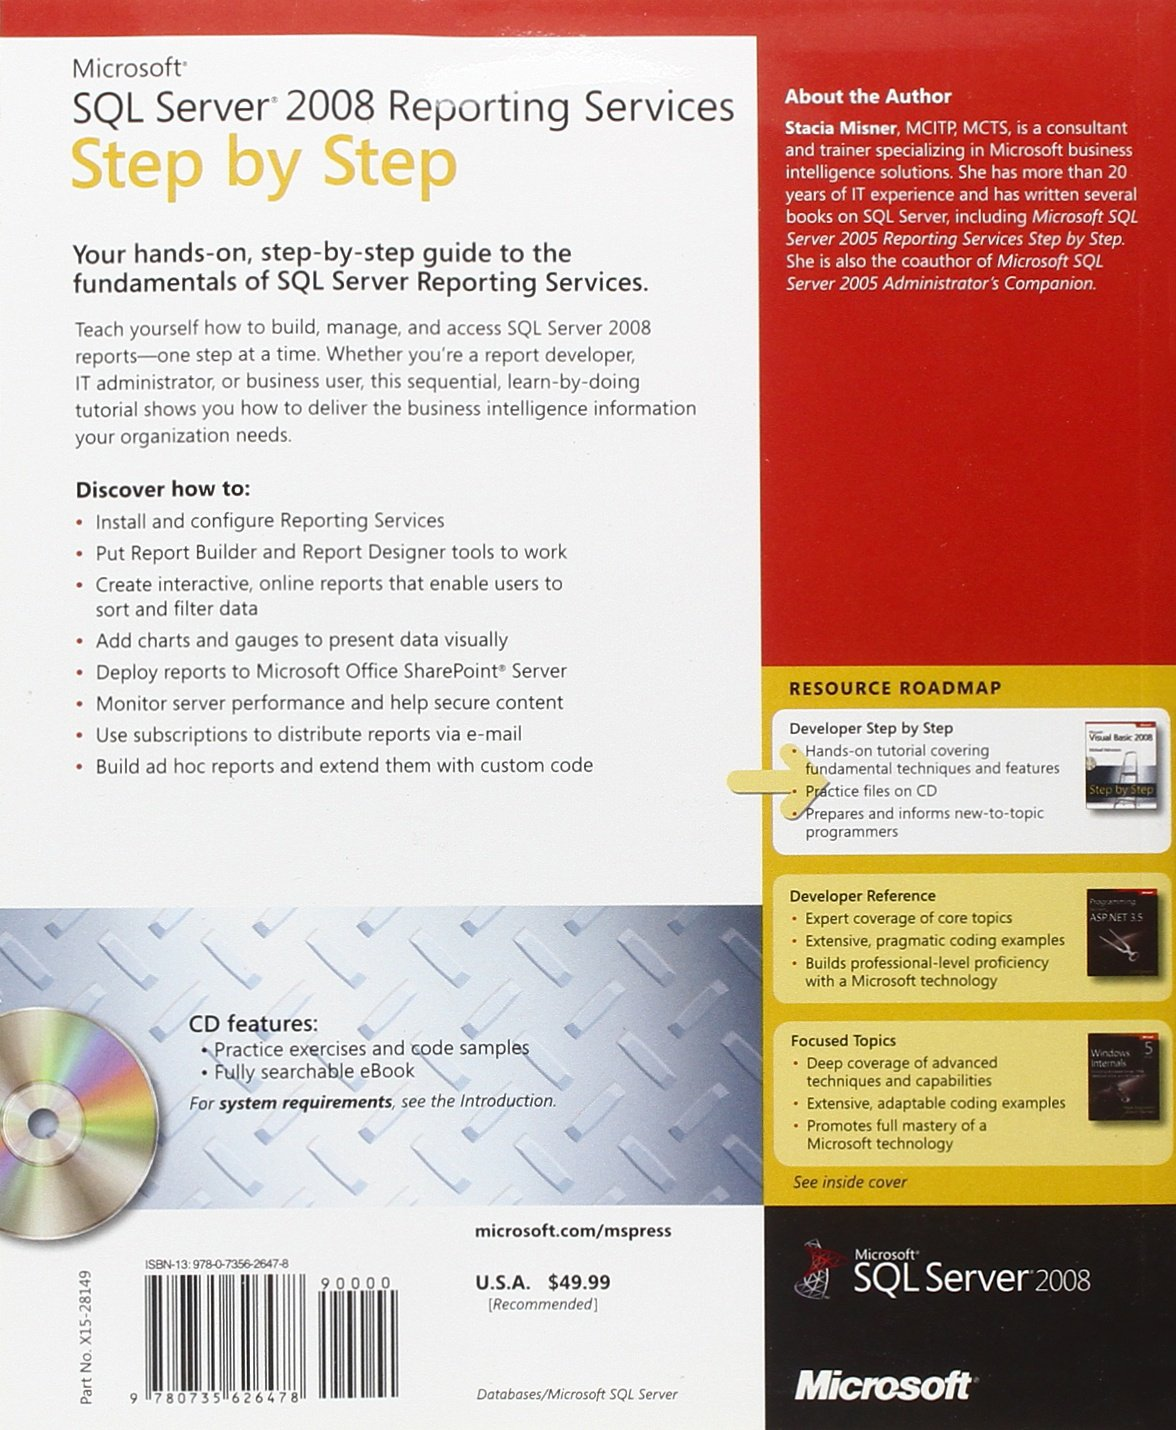 Microsoft Sql Server 2008 Reporting Services Step By Step Ebook